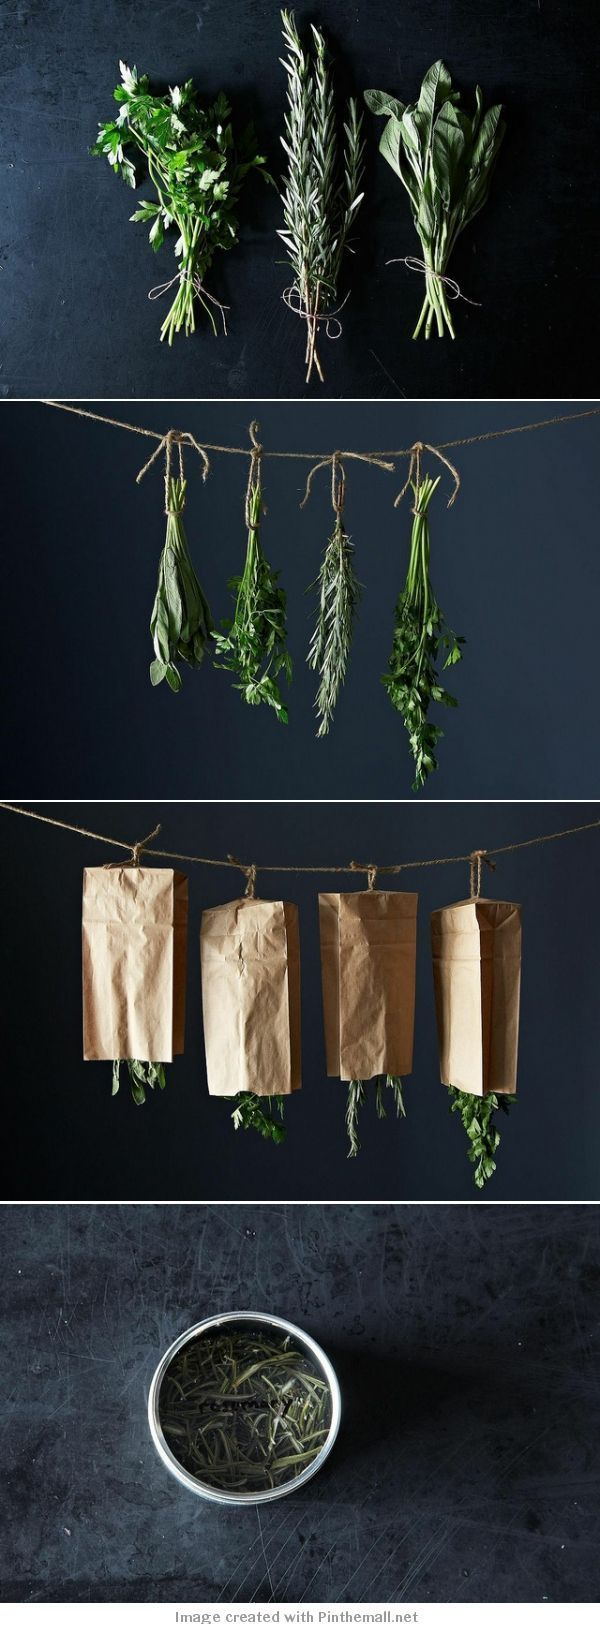 How to properly dry your herbs /